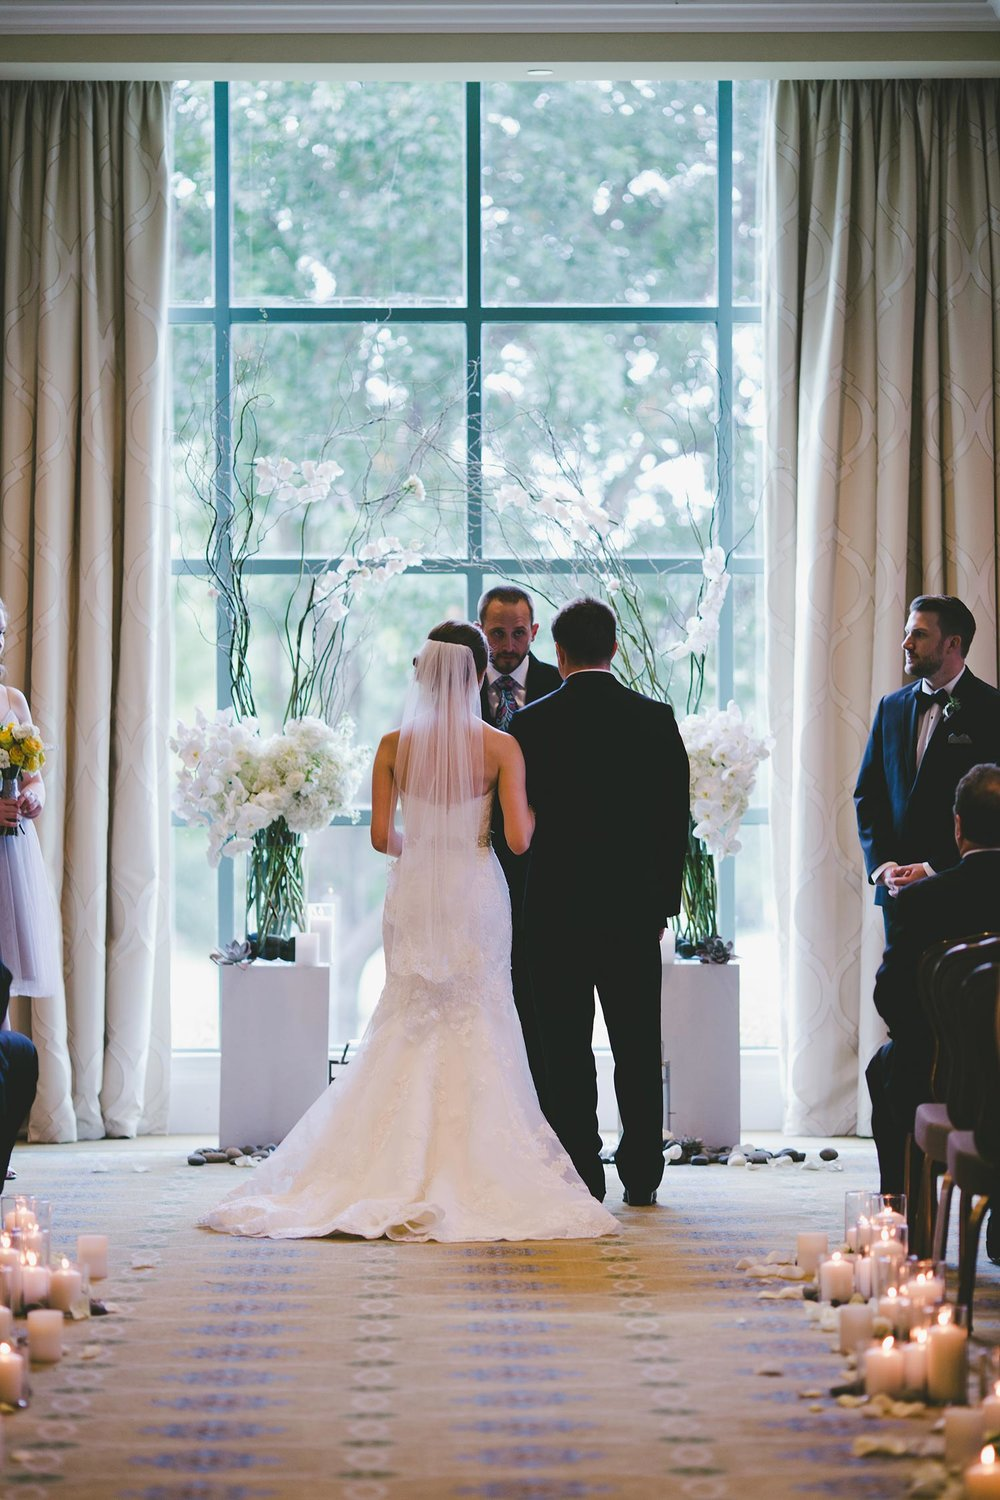 River Crest Country Club ceremony in front of large windows with a white flower and branch archway